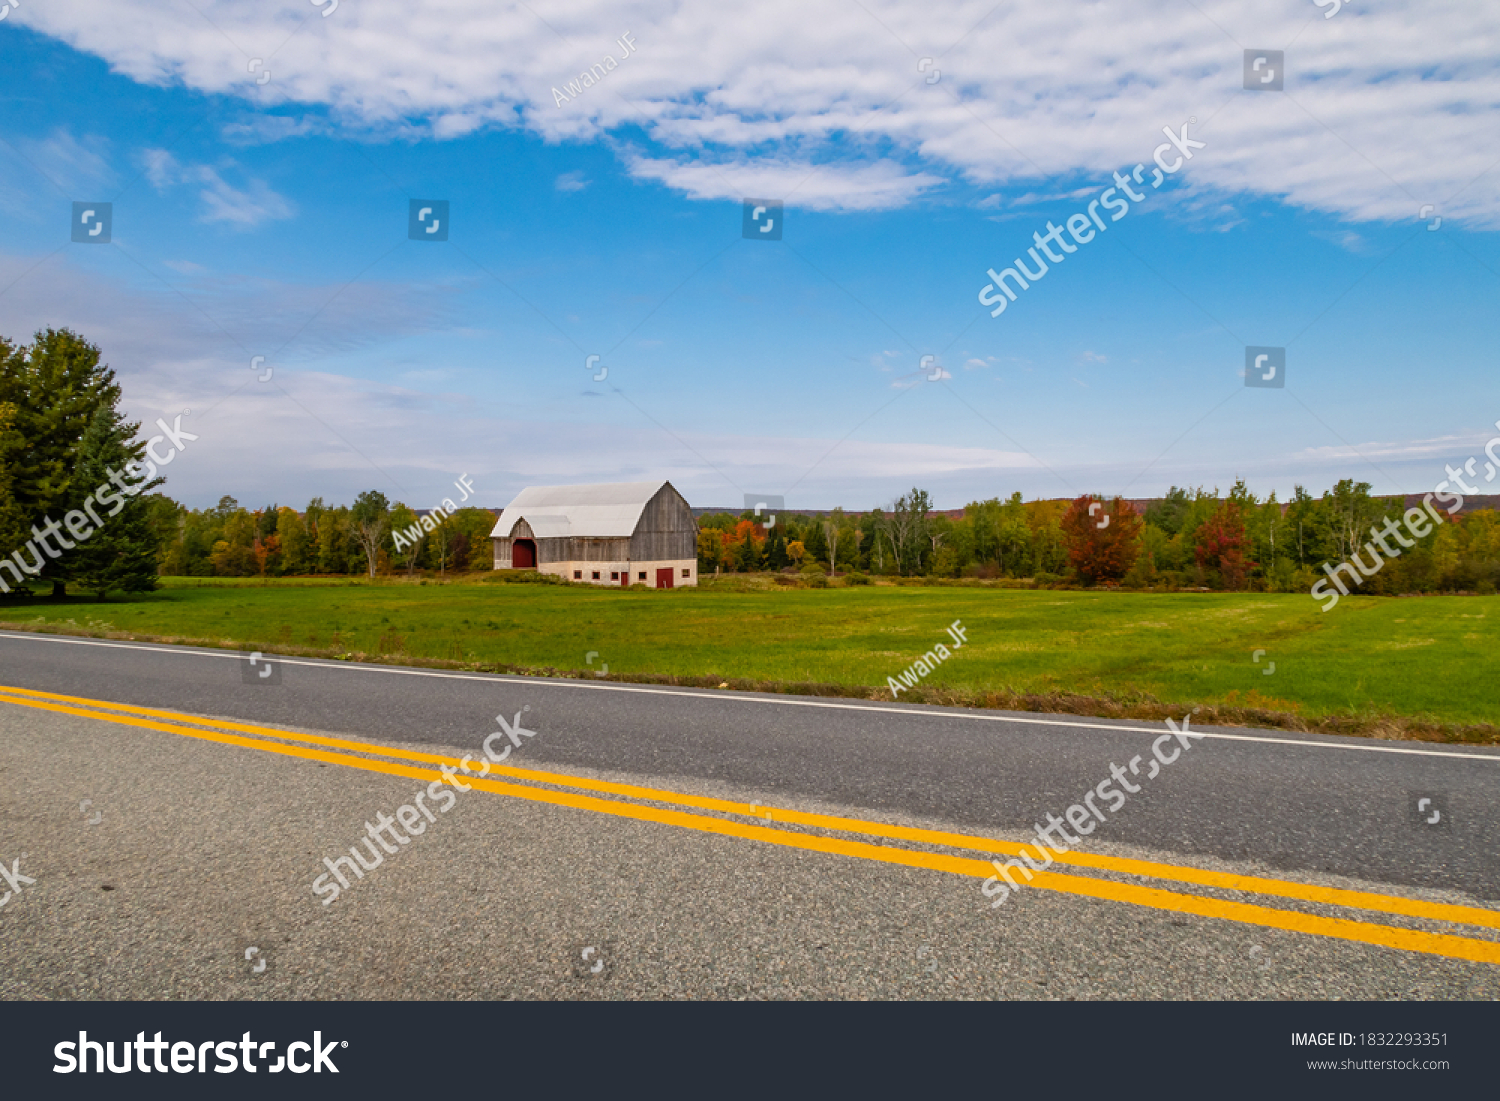 stock-photo-mont-orford-canada-september